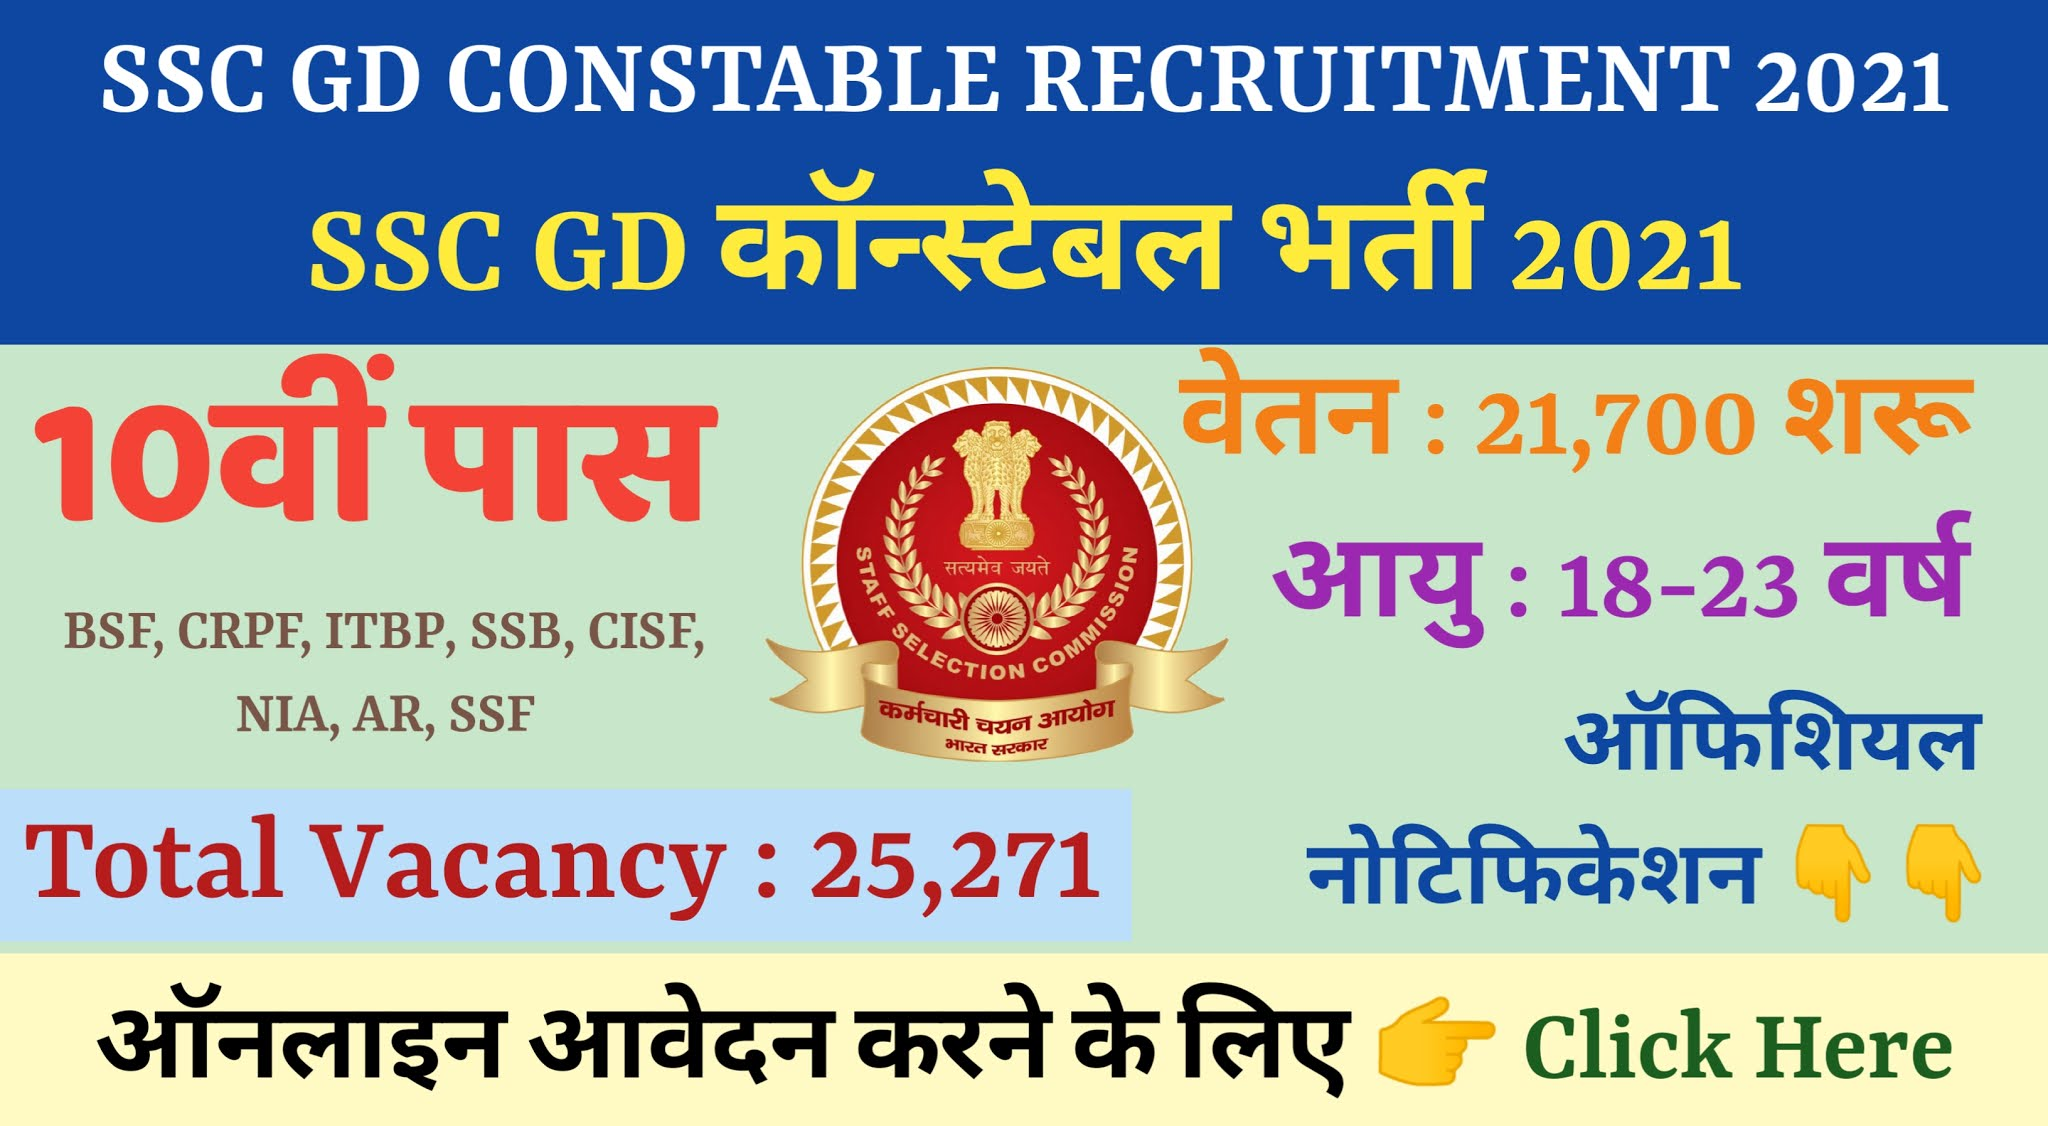 SSC GD Constable Recruitment 2021   SSC GD Bharti 2021   SSC GD Constable 2021   SSC GD Constable Total Vacancy   SSC GD Constable Education Qualification   SSC GD Constable Eligibility Criteria   SSC GD Constable Salary   Salary for SSC GD Constable Recruitment 2021   Pay Scale for SSC GD Constable Recruitment 2021   SSC GD Constable Age Limit   Age Limit for SSC GD Constable Recruitment 2021   SSC GD Constable Exam Pattern   SSC GD Exam Pattern   SSC GD Constable Exam Pattern 2021   SSC GD Exam Pattern 2021   SSC GD Constable Syllabus   SSC GD Constable Exam Syllabus   SSC GD Constable Syllabus 2021   SSC GD Constable Exam Syllabus 2021   SSC GD Constable Physical Efficiency Test   SSC GD Constable PET   SSC GD Constable Physical Standard Test   SSC GD Constable PST   SSC GD Constable Medical Exam   SSC GD Constable Selection Process   How to Apply SSC GD Constable 2021   Last Date for SSC GD Constable Recruitment 2021   SSC GD Notification   SSC GD Cosntable 2021 Notification   SSC GD Constable 2021 Syllabus   SSC GD Constable 2021 Apply Online   SSC GD Constable Notification   SSC GD Constable Notification PDF 2021   SSC GD Constable New Bharti 2021   SSC GD Recruitment 2021 Apply Online  